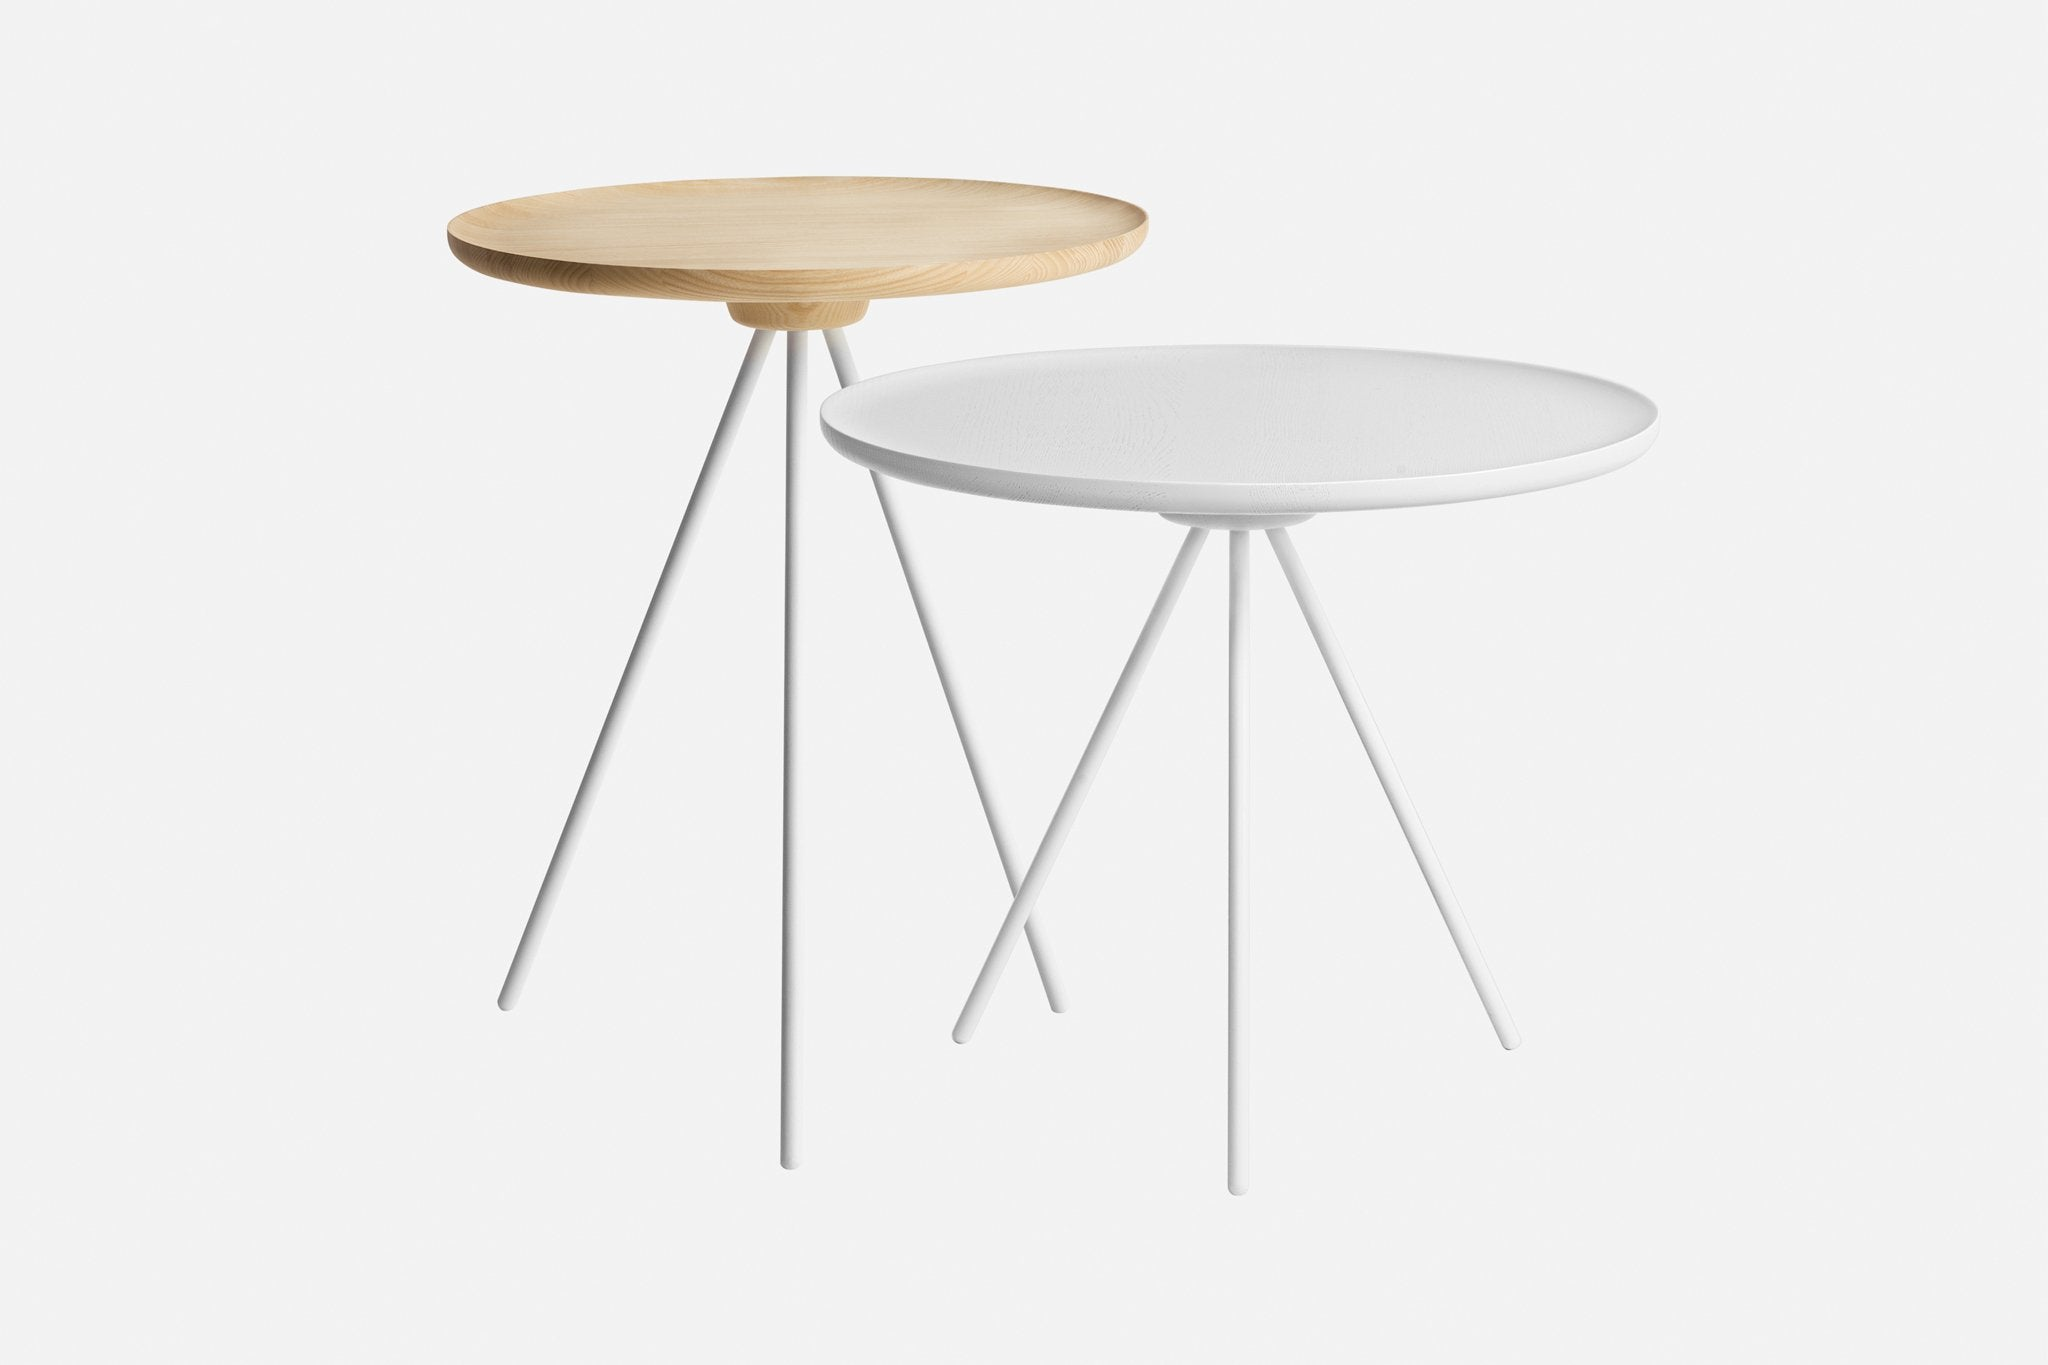 6 Coffee Tables for the Scandinavian Living Space